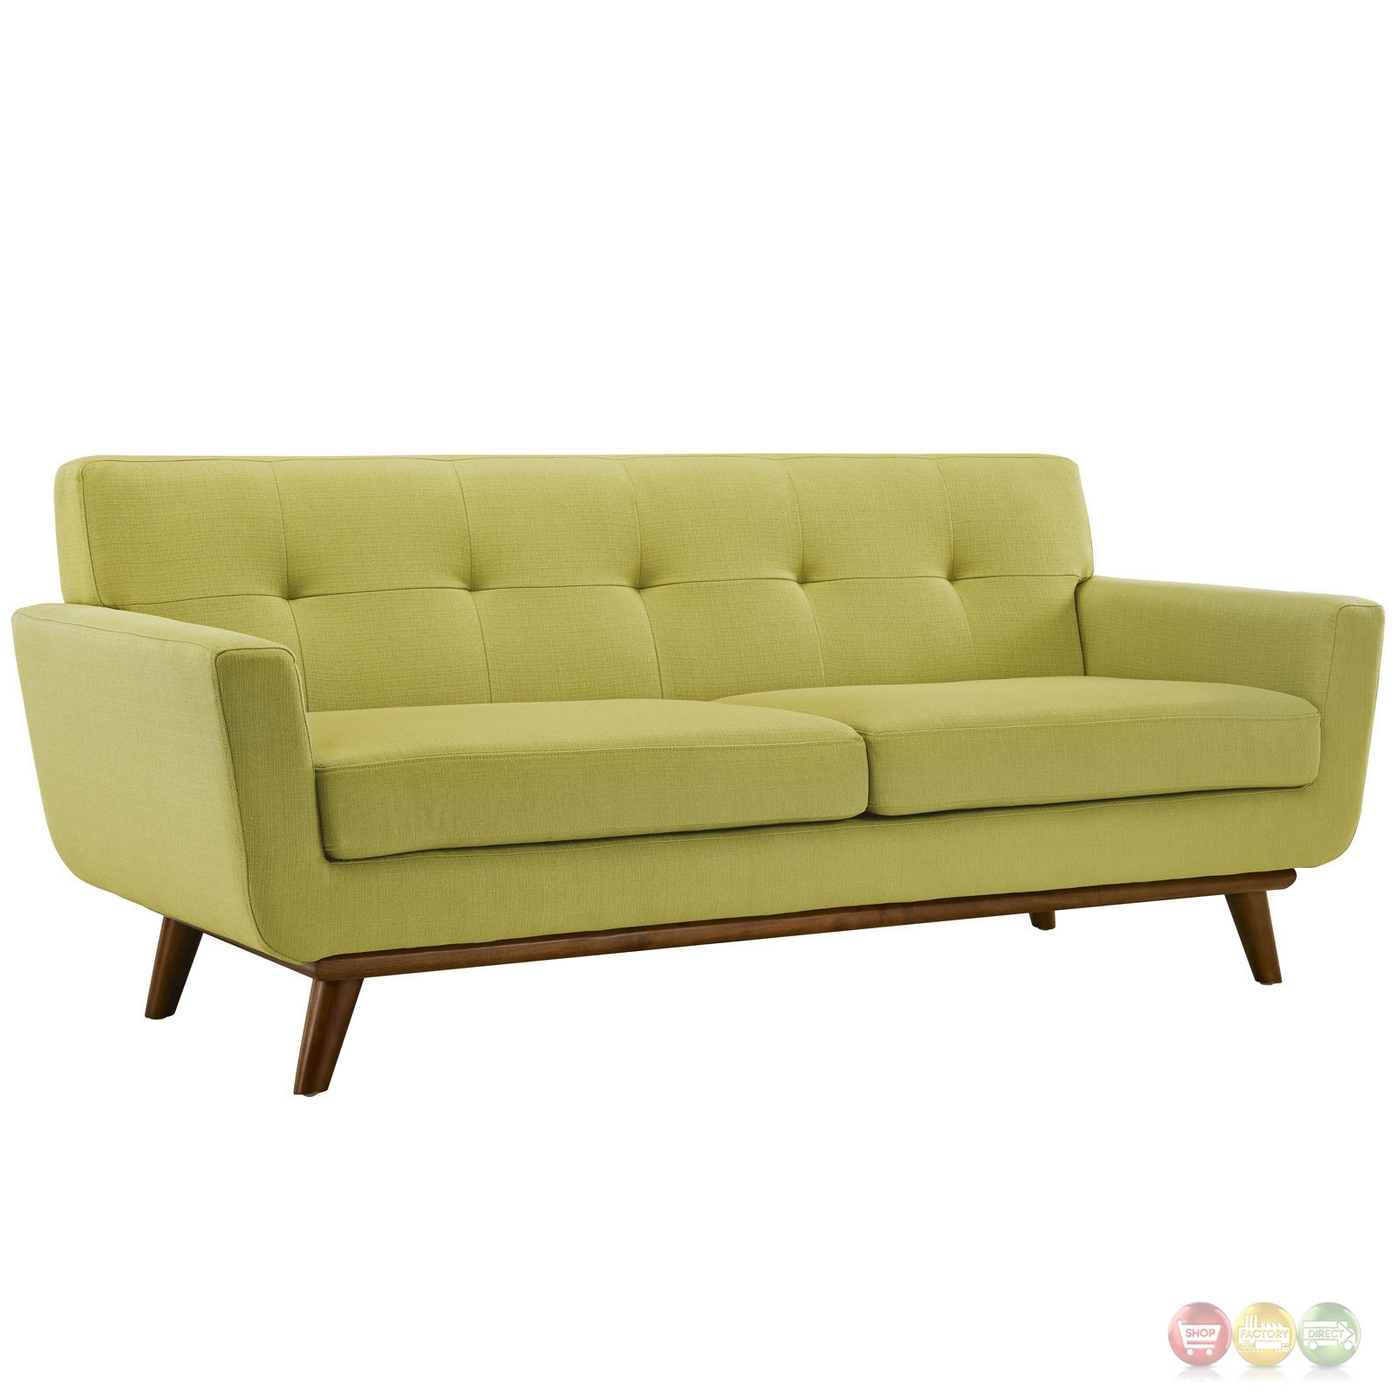 button tufted sofas camper sofa bed diy engage modern 2pc upholstered loveseat and